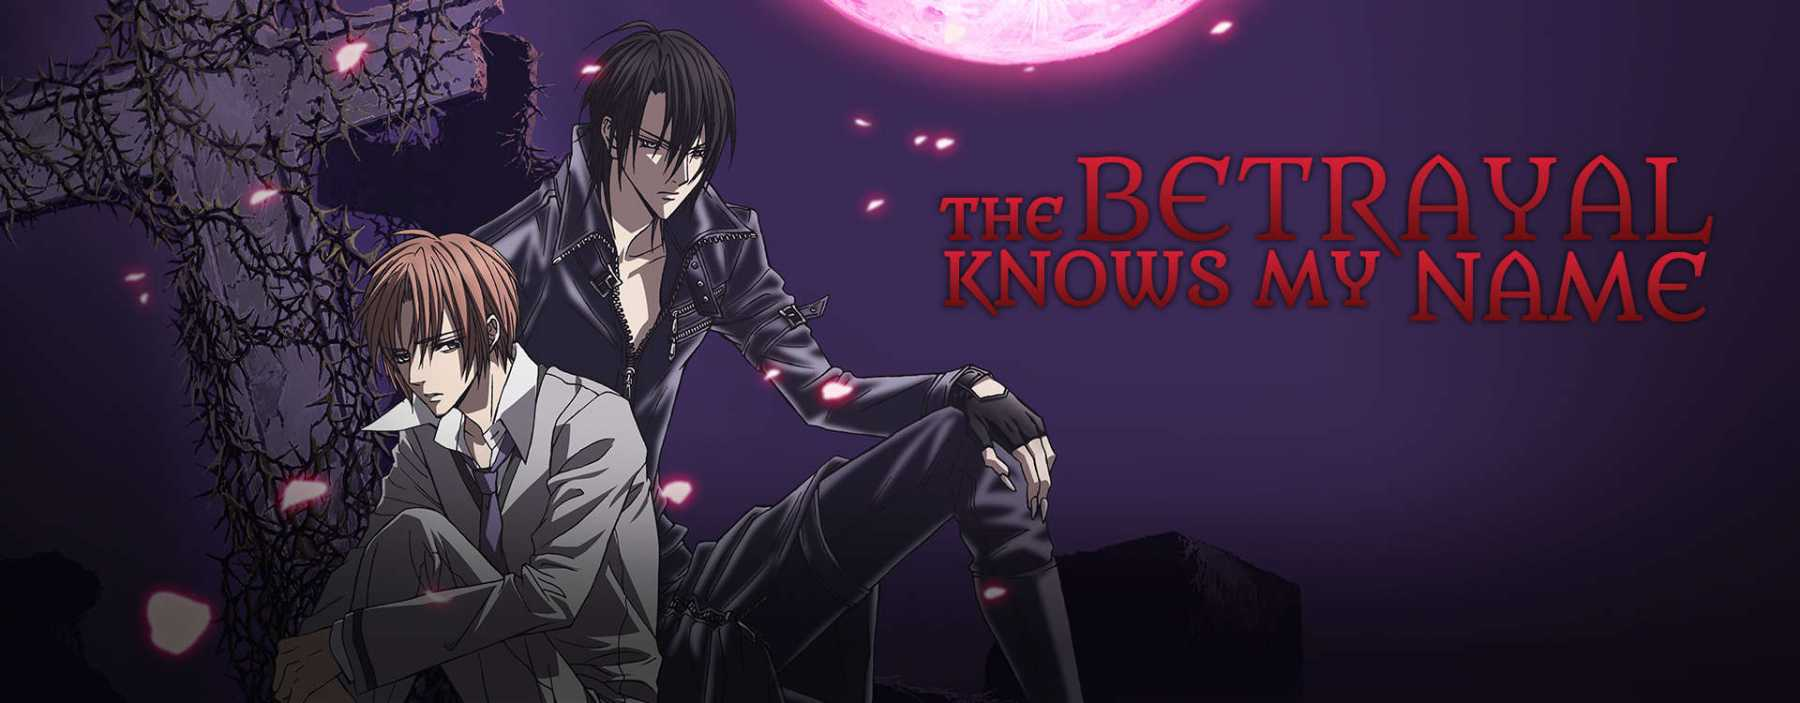 The Betrayal Knows My Name Is An Anime With Drama, Romance and Supernatural Fun  | the betrayal knows my name